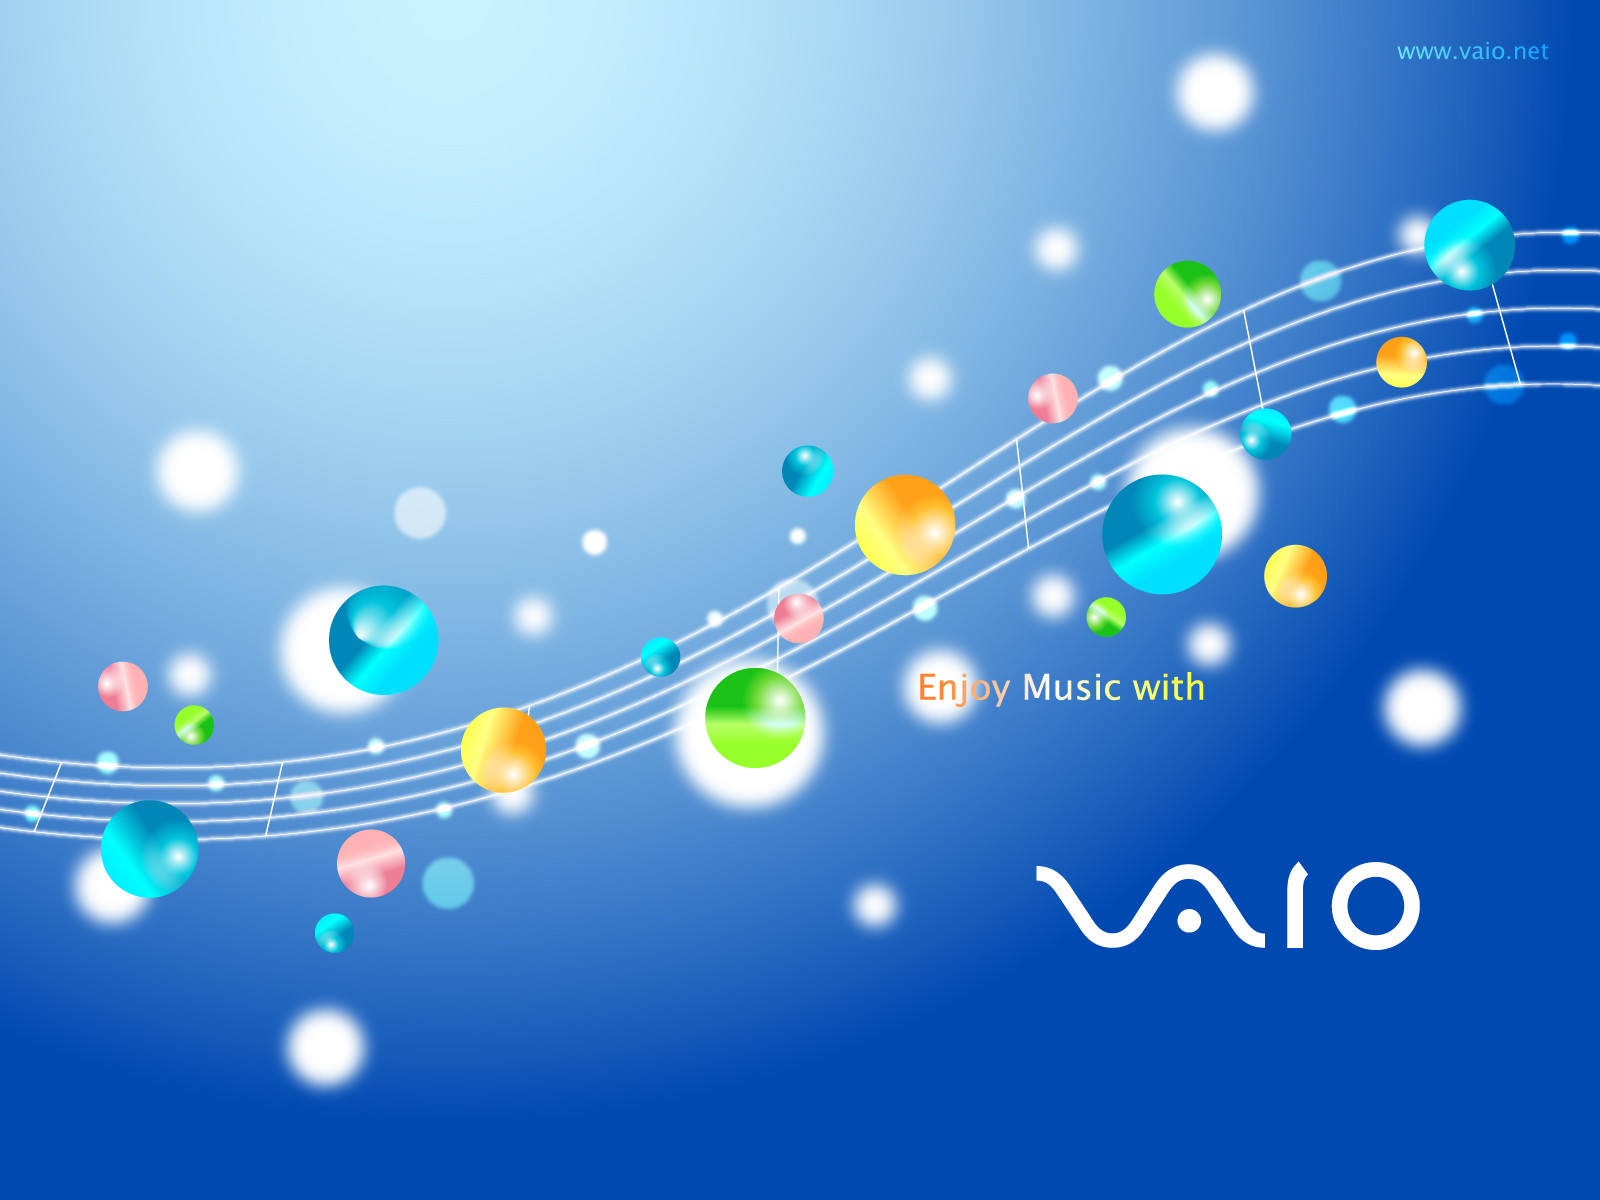 1600x1200 HD Sony Vaio Wallpapers & Vaio Backgrounds For Free Download